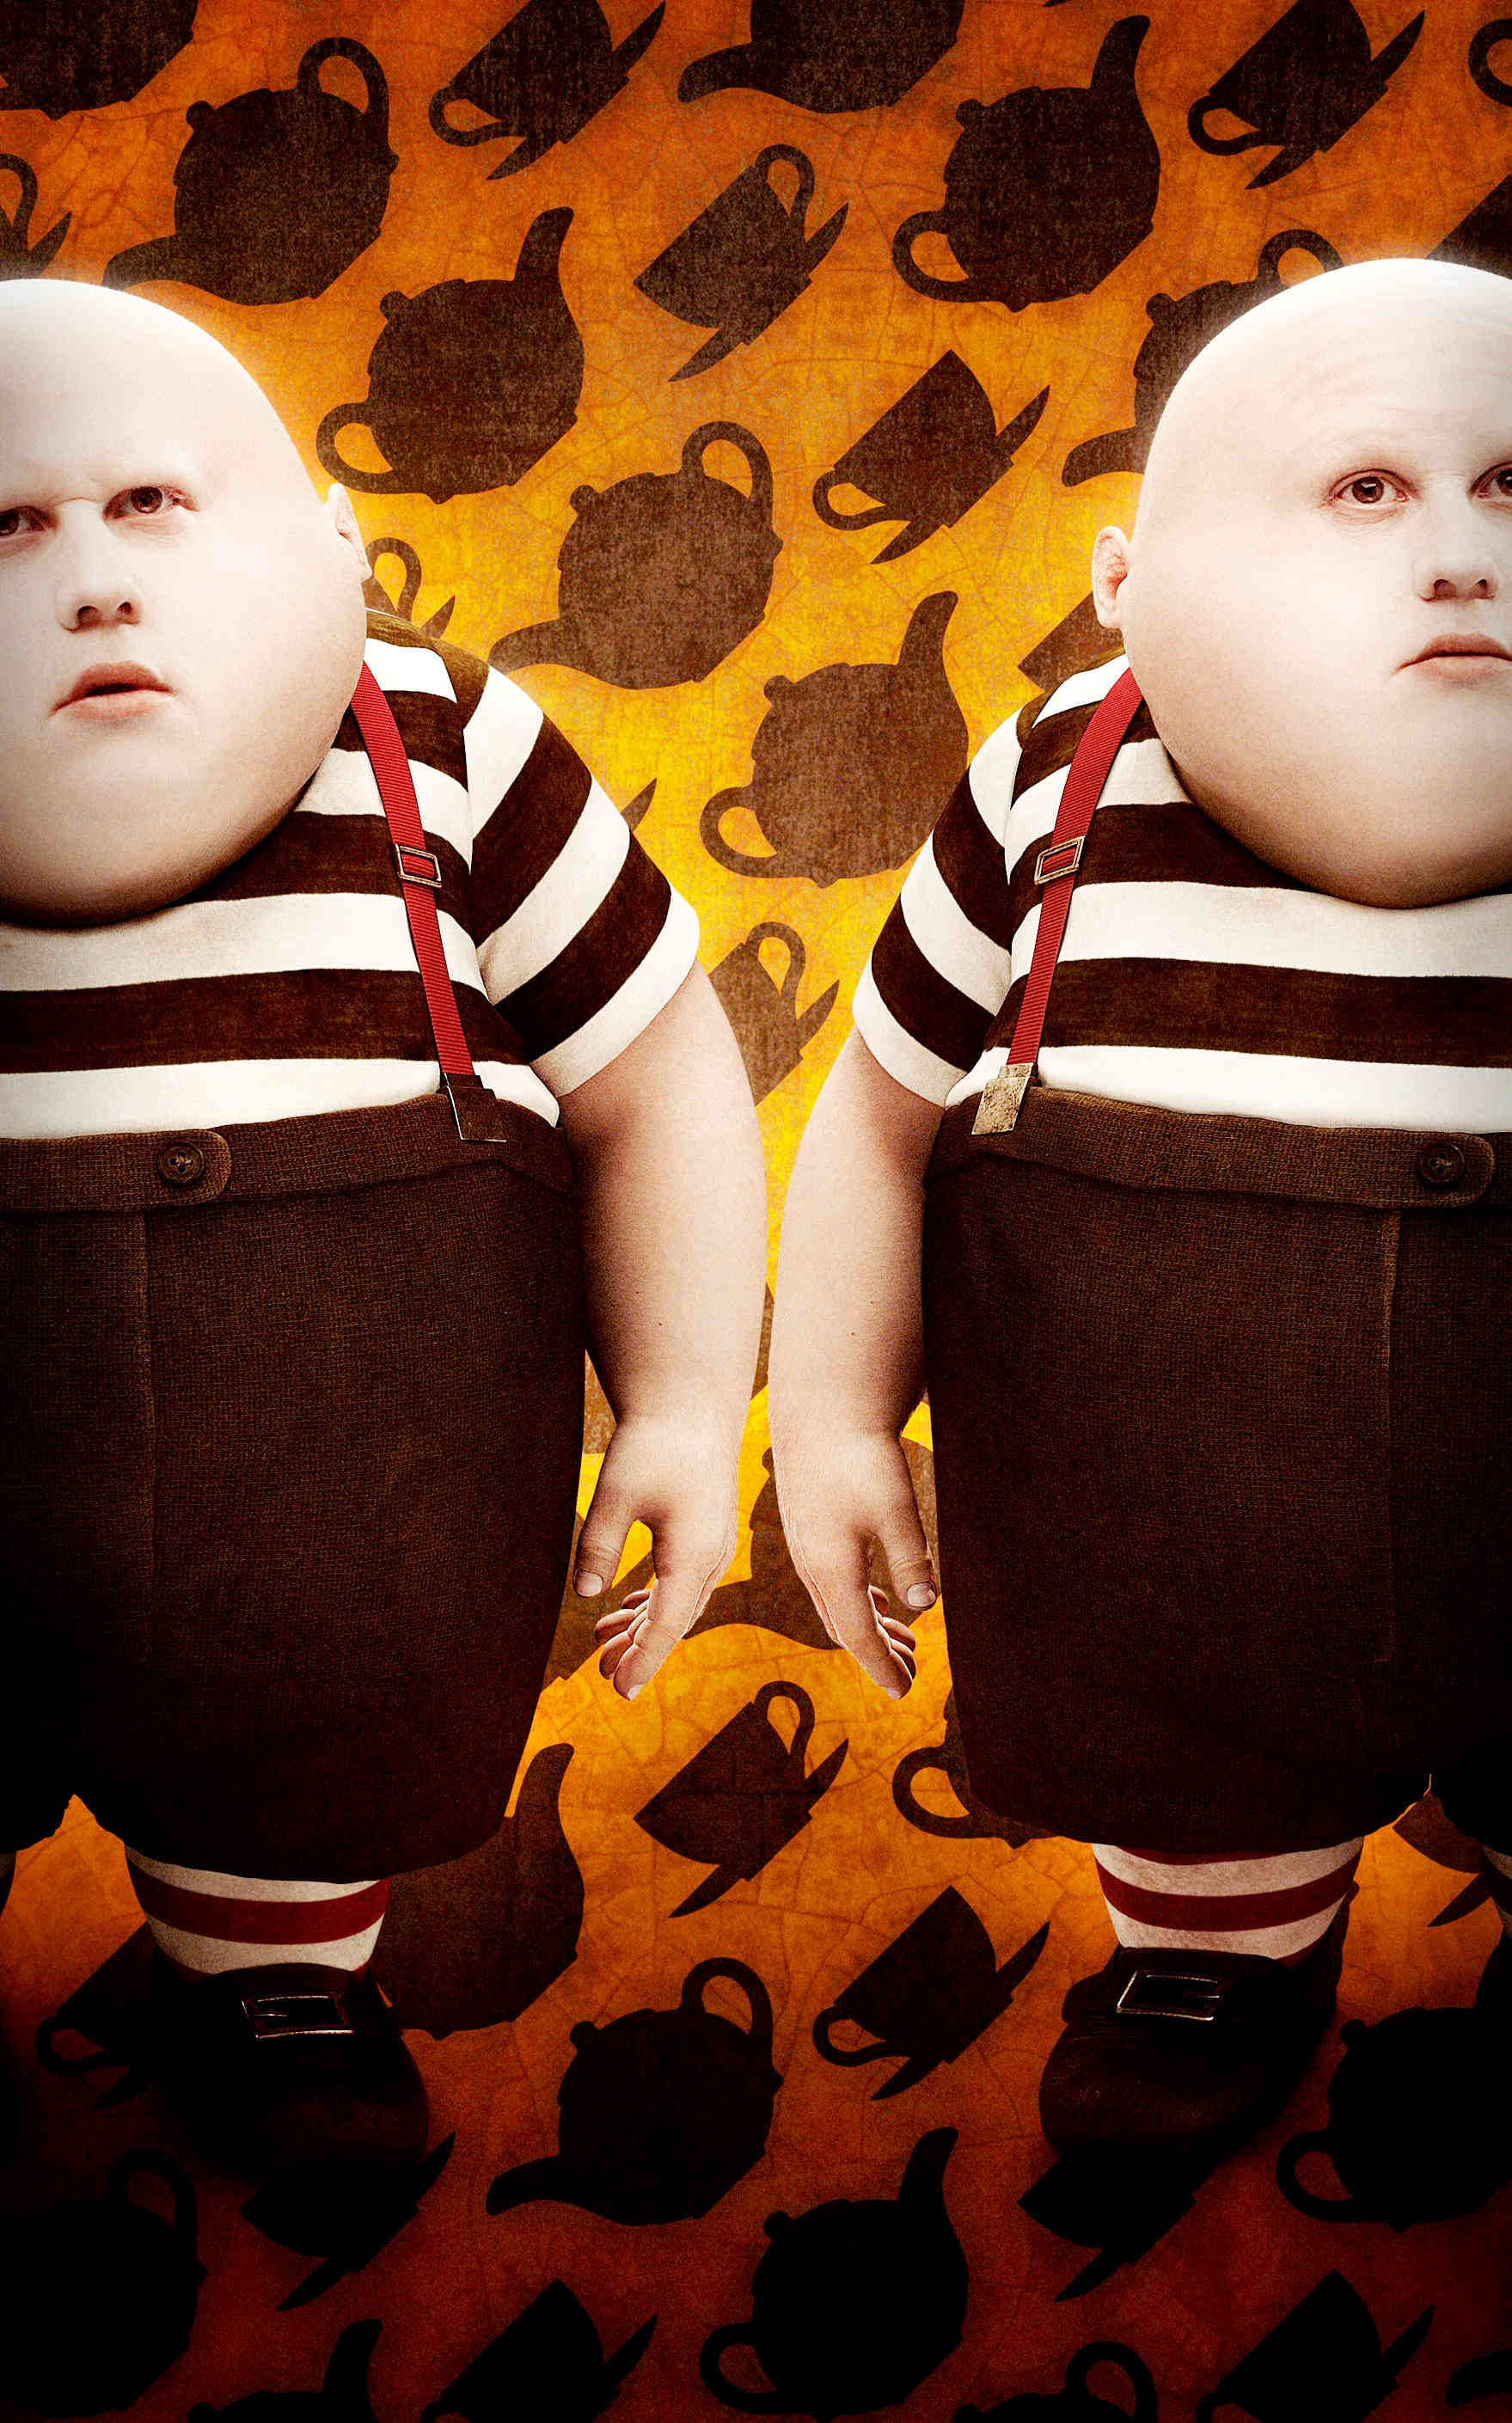 Cartoon Characters Yellow And Black Striped Shirts : The tweedle boys disney wiki fandom powered by wikia